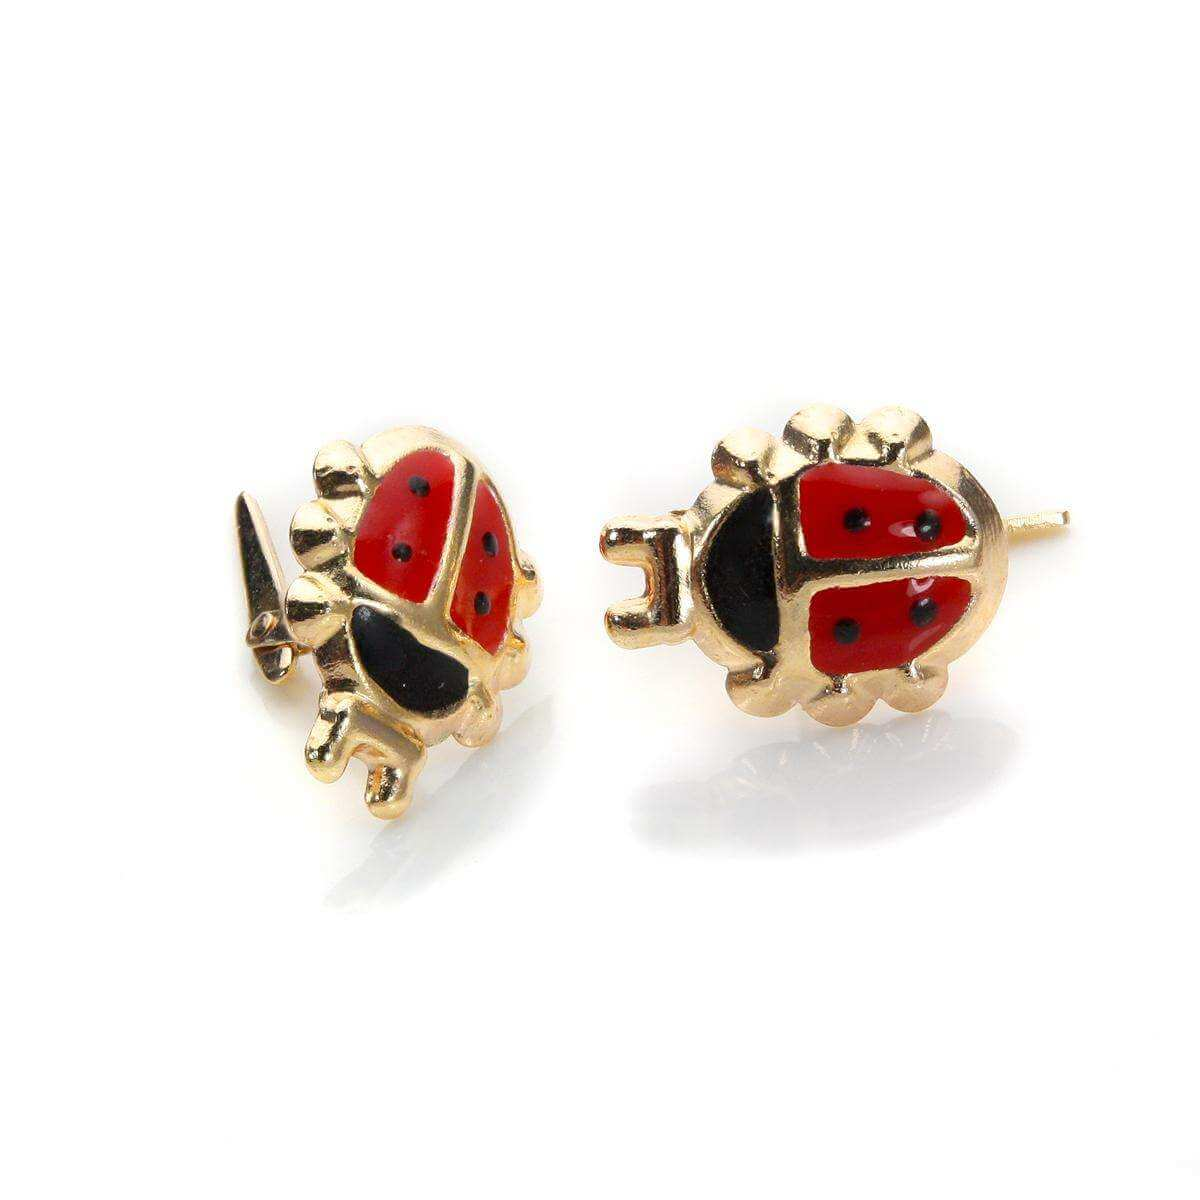 Andralok 9ct Yellow Gold Enamelled Ladybird Stud Earrings